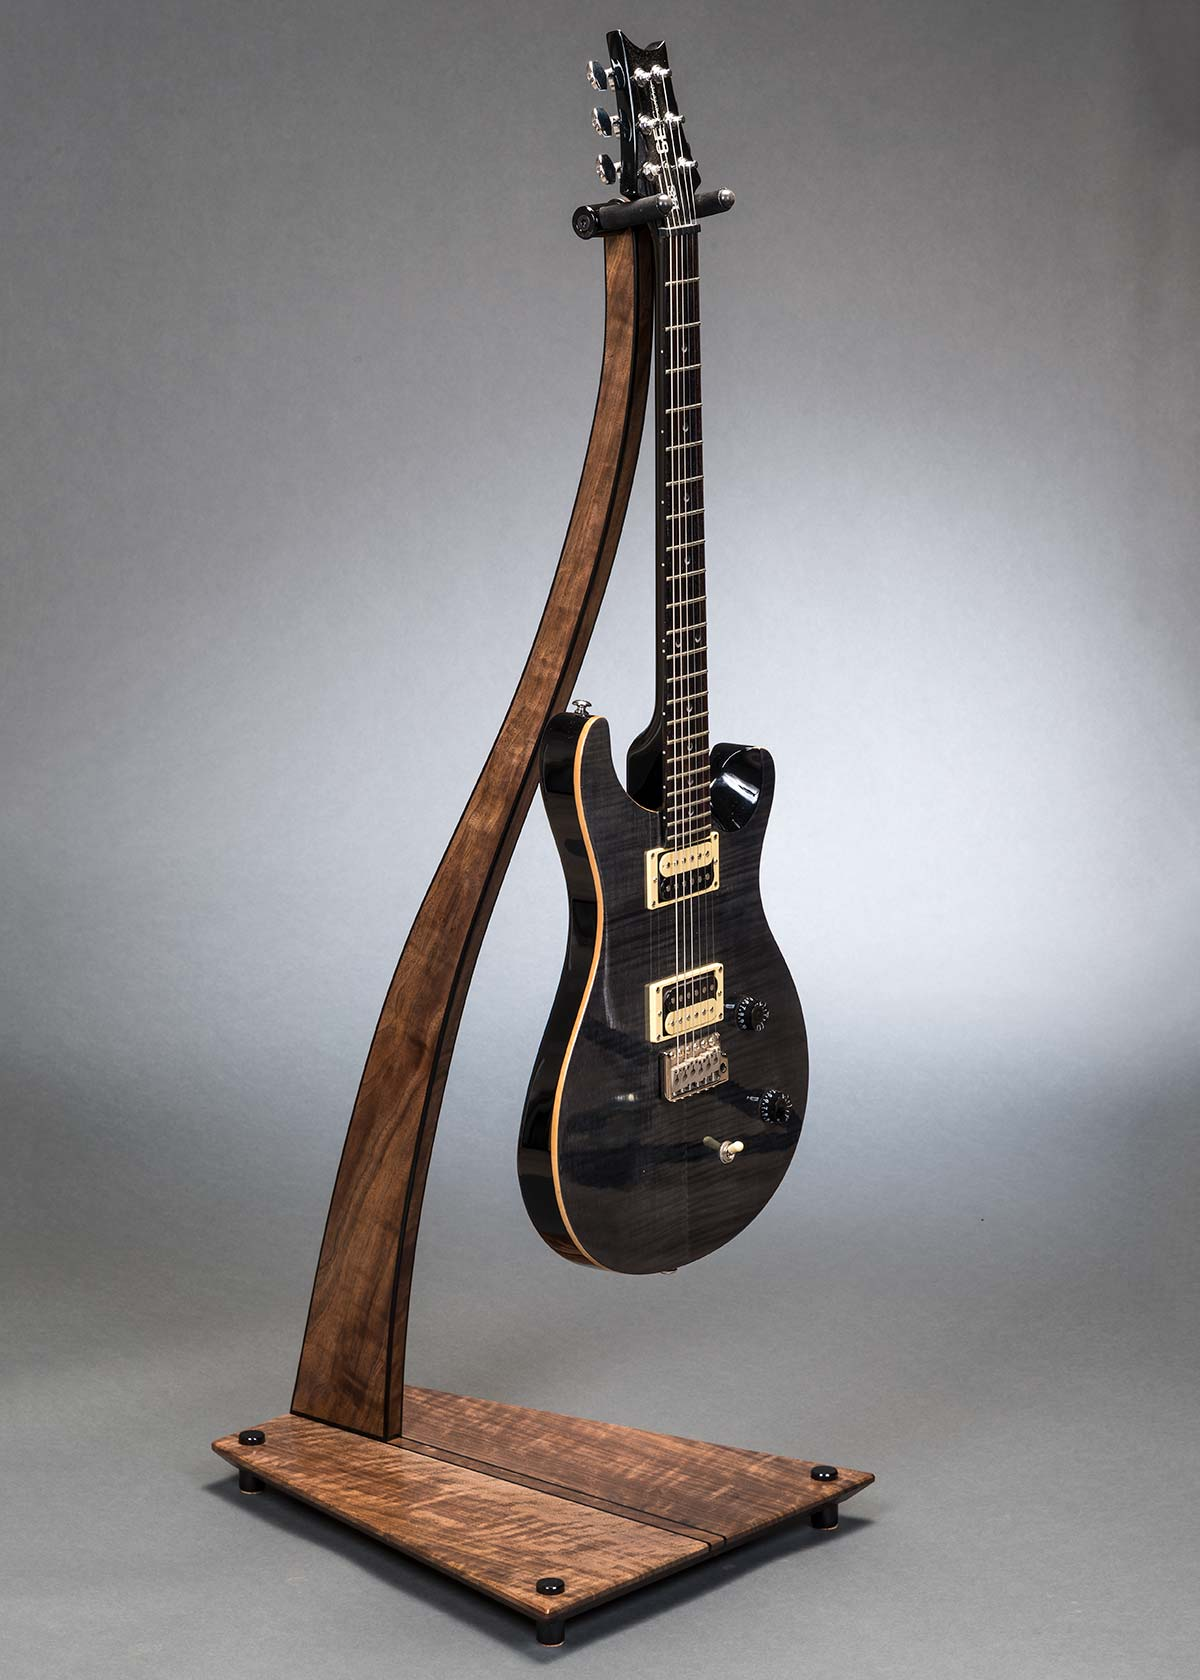 SM Guitar Stand in Claro Walnut with Ebony Inlay and Edge Binding